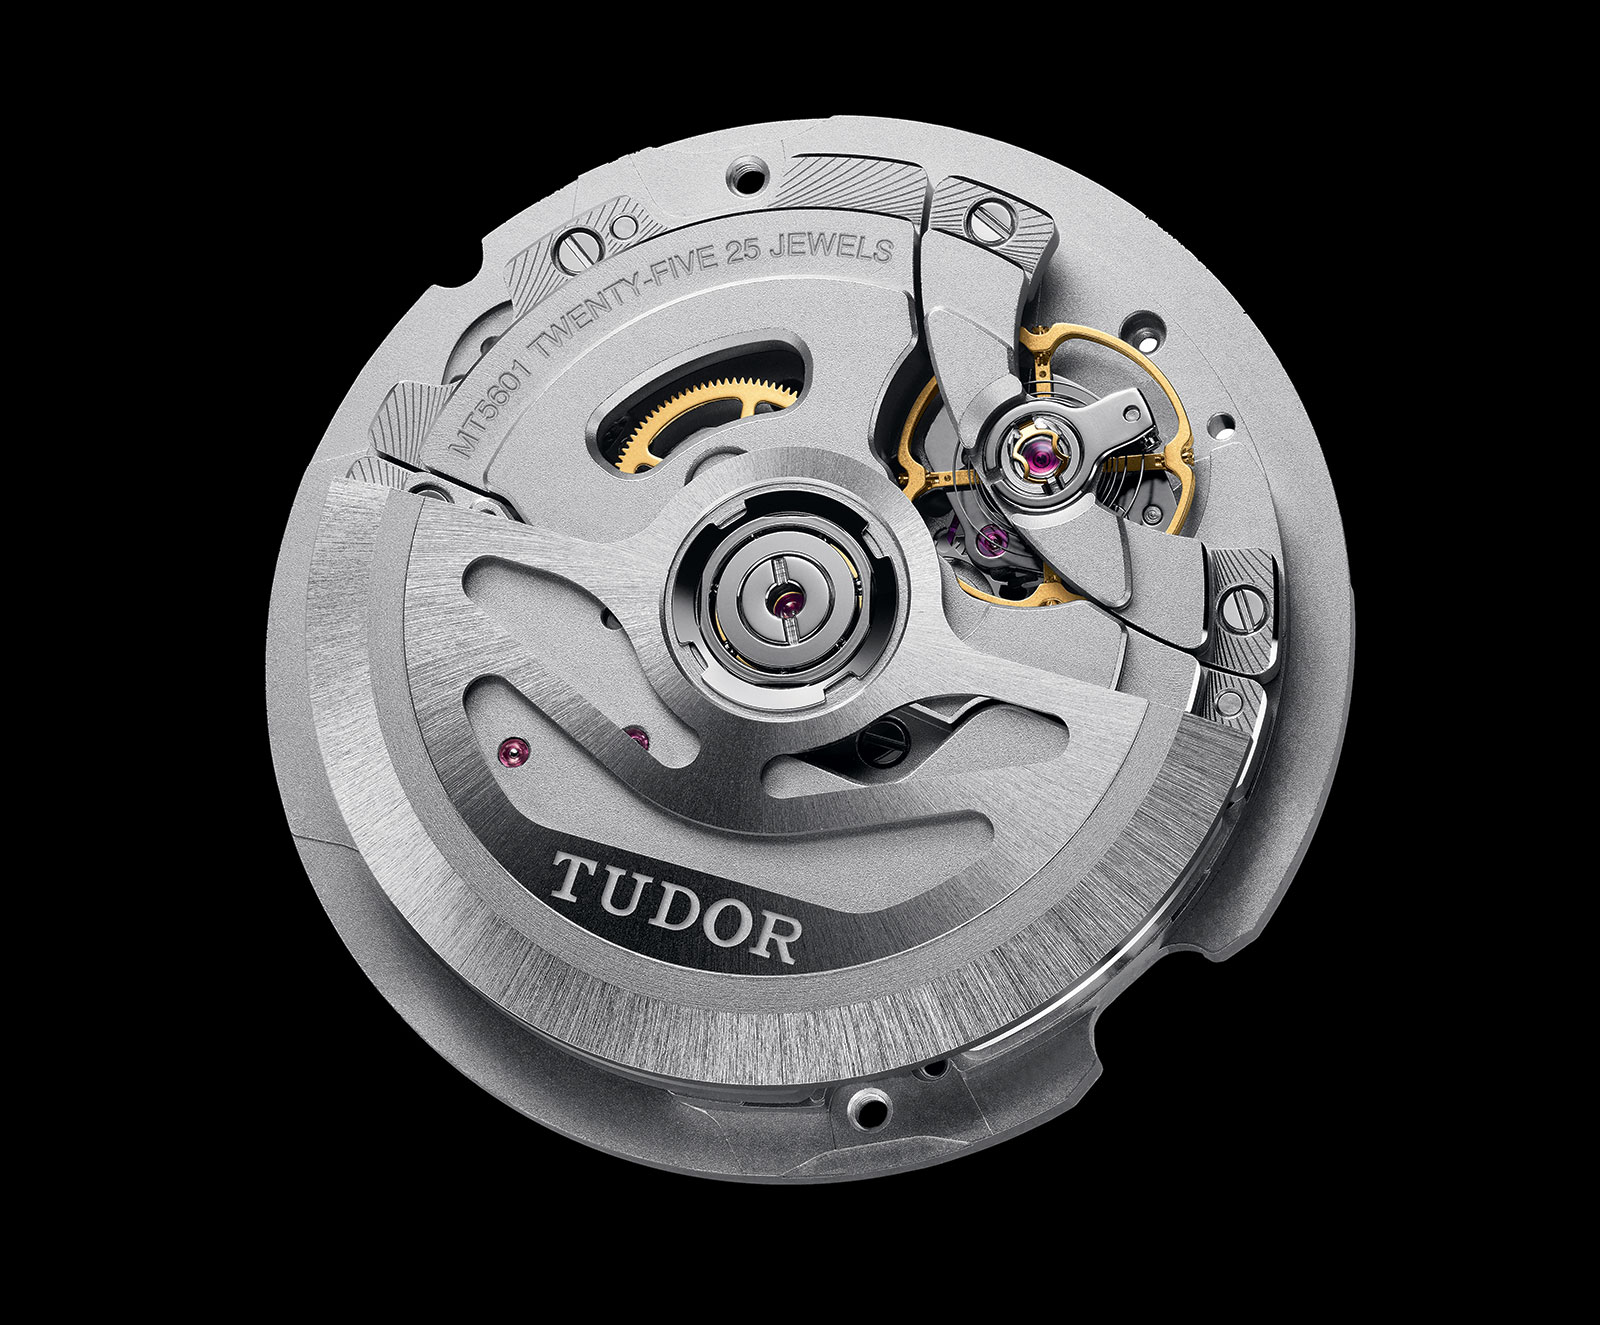 Tudor mt5601 movement